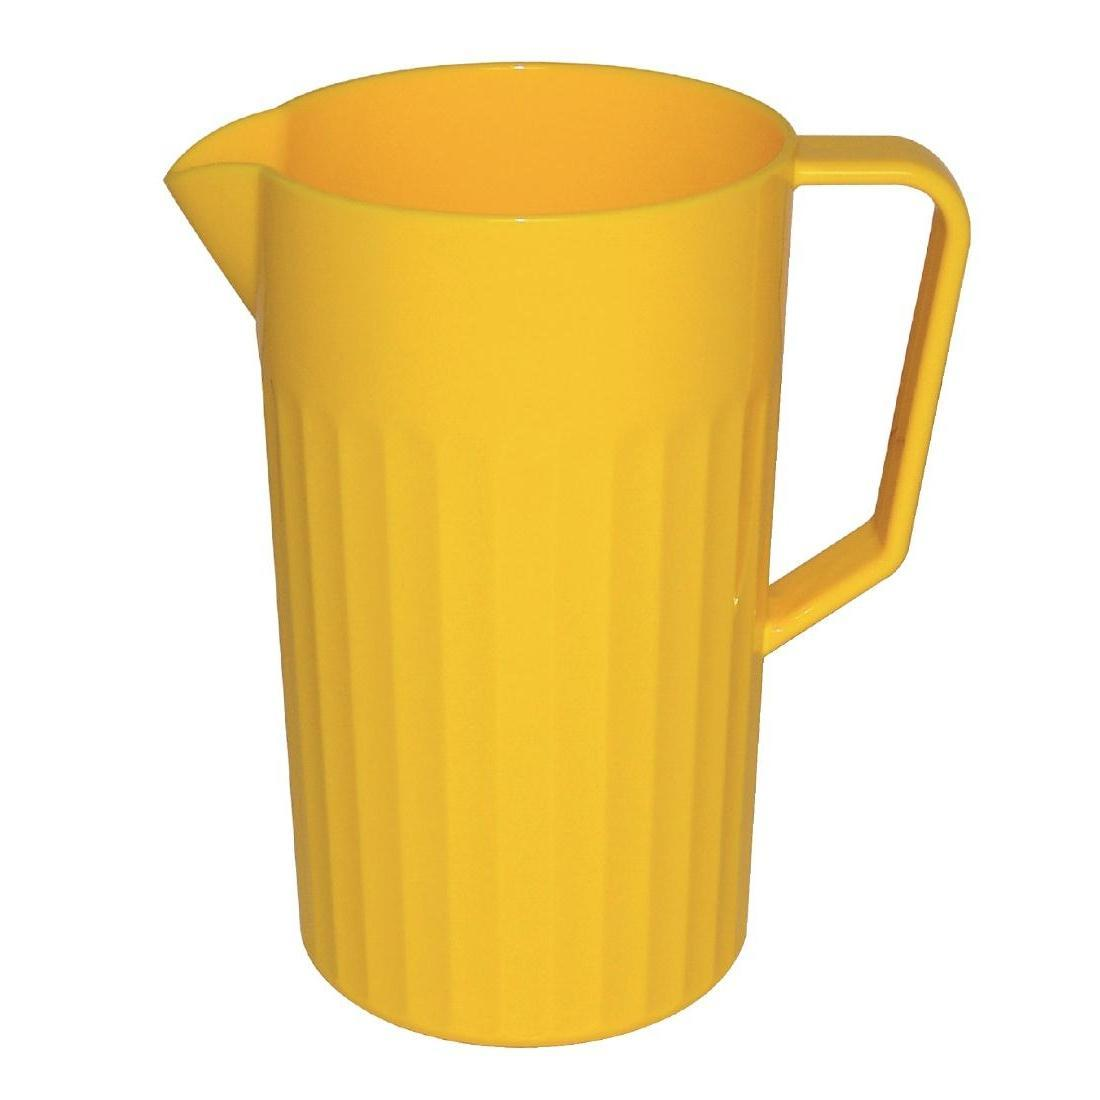 Kristallon Polycarbonate Jug Yellow 1.4Ltr - Each - CE278